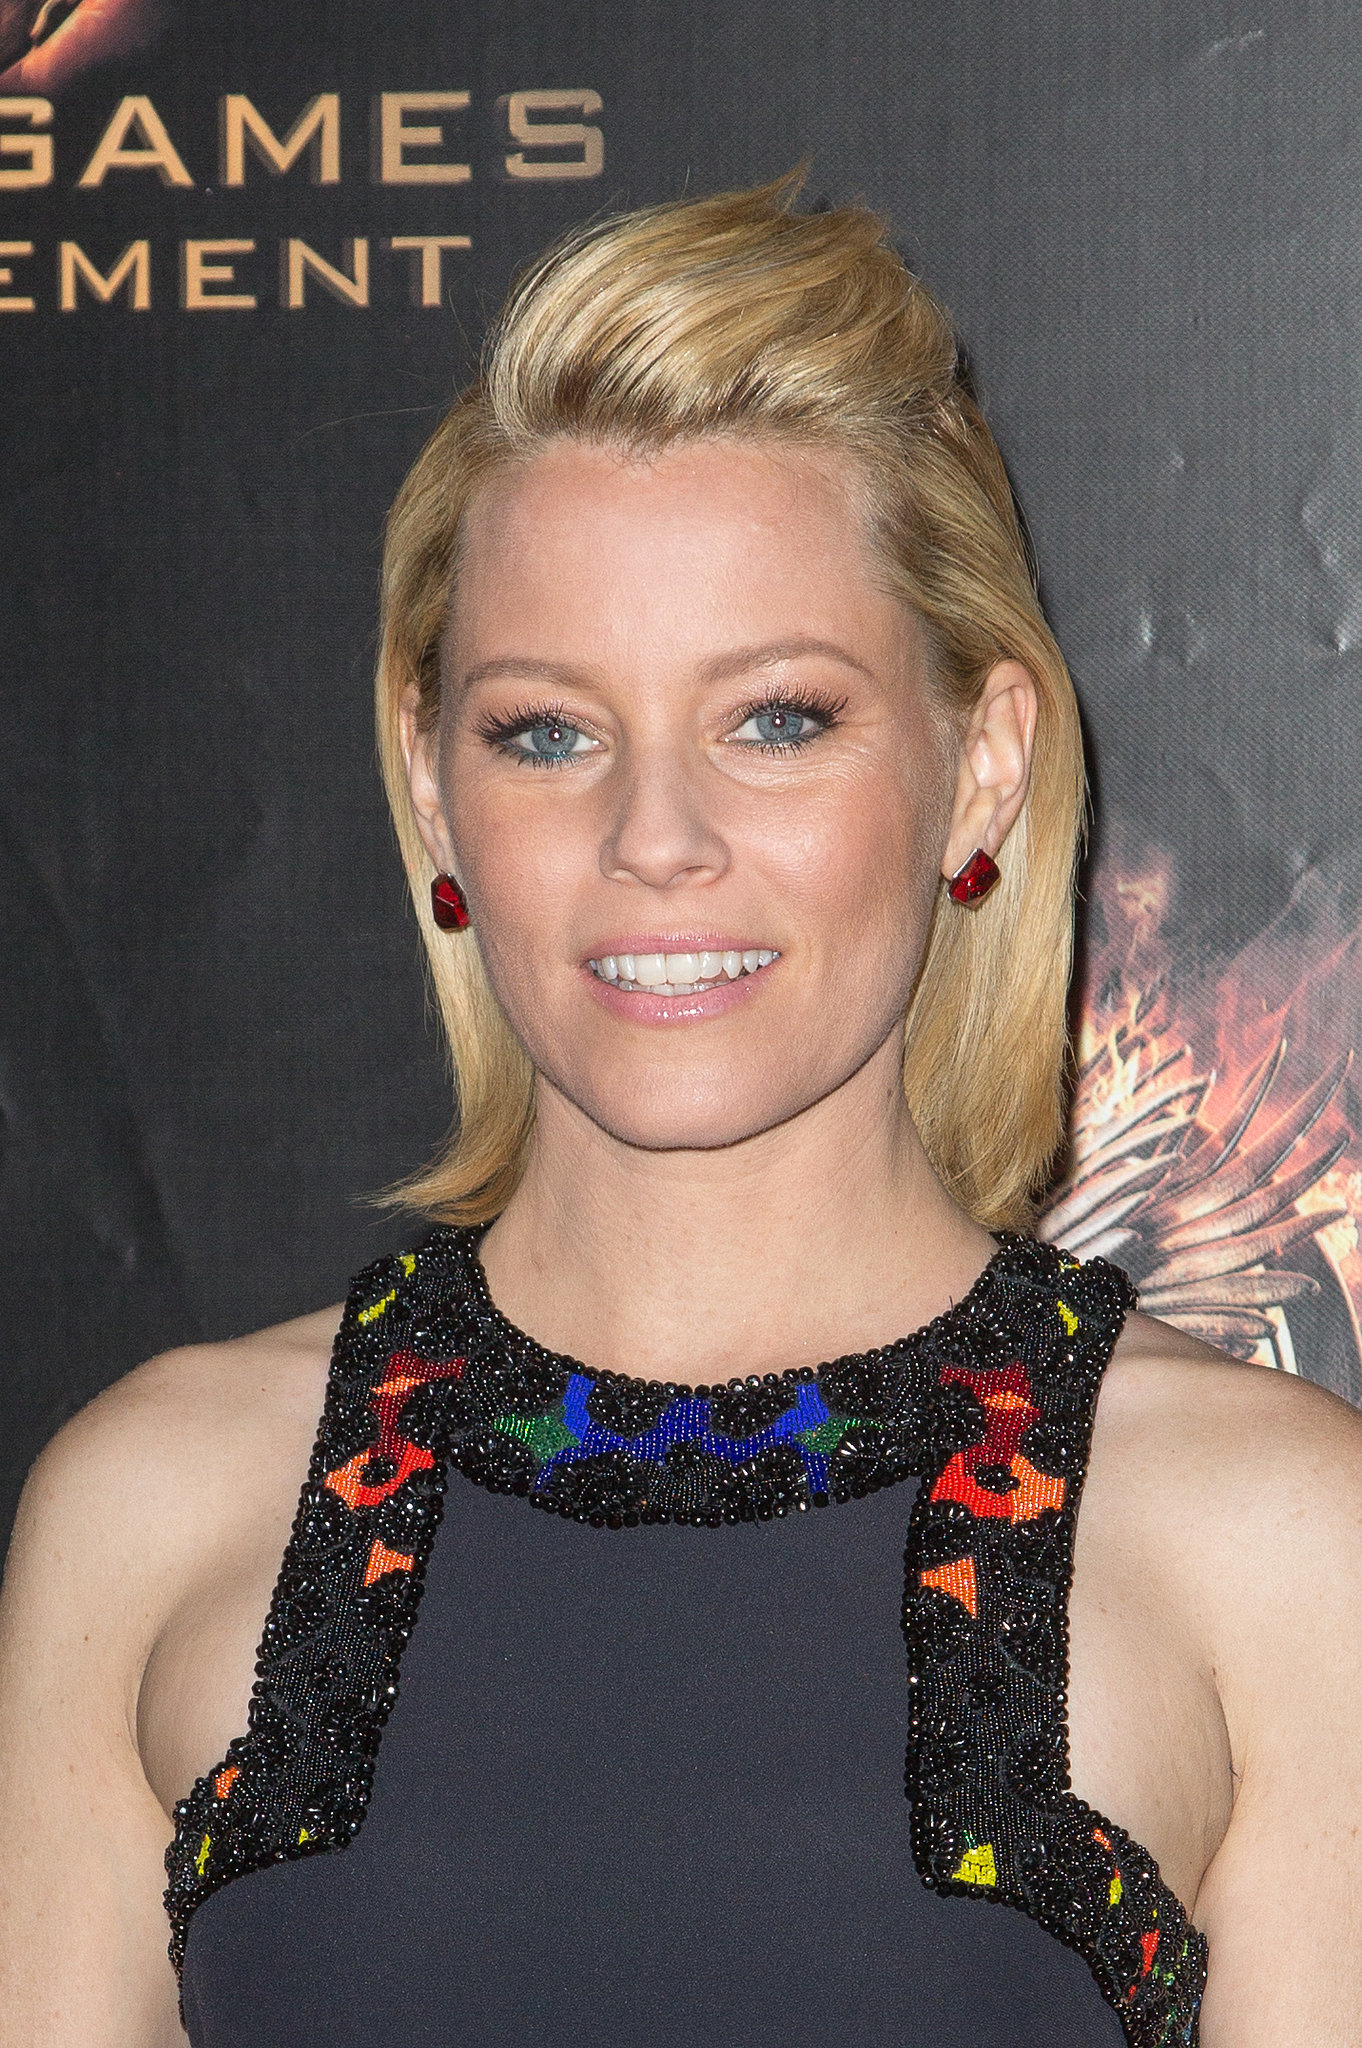 At the Paris premiere of Catching Fire, Elizabeth Banks wore a half-up hairstyle and barely there makeup.